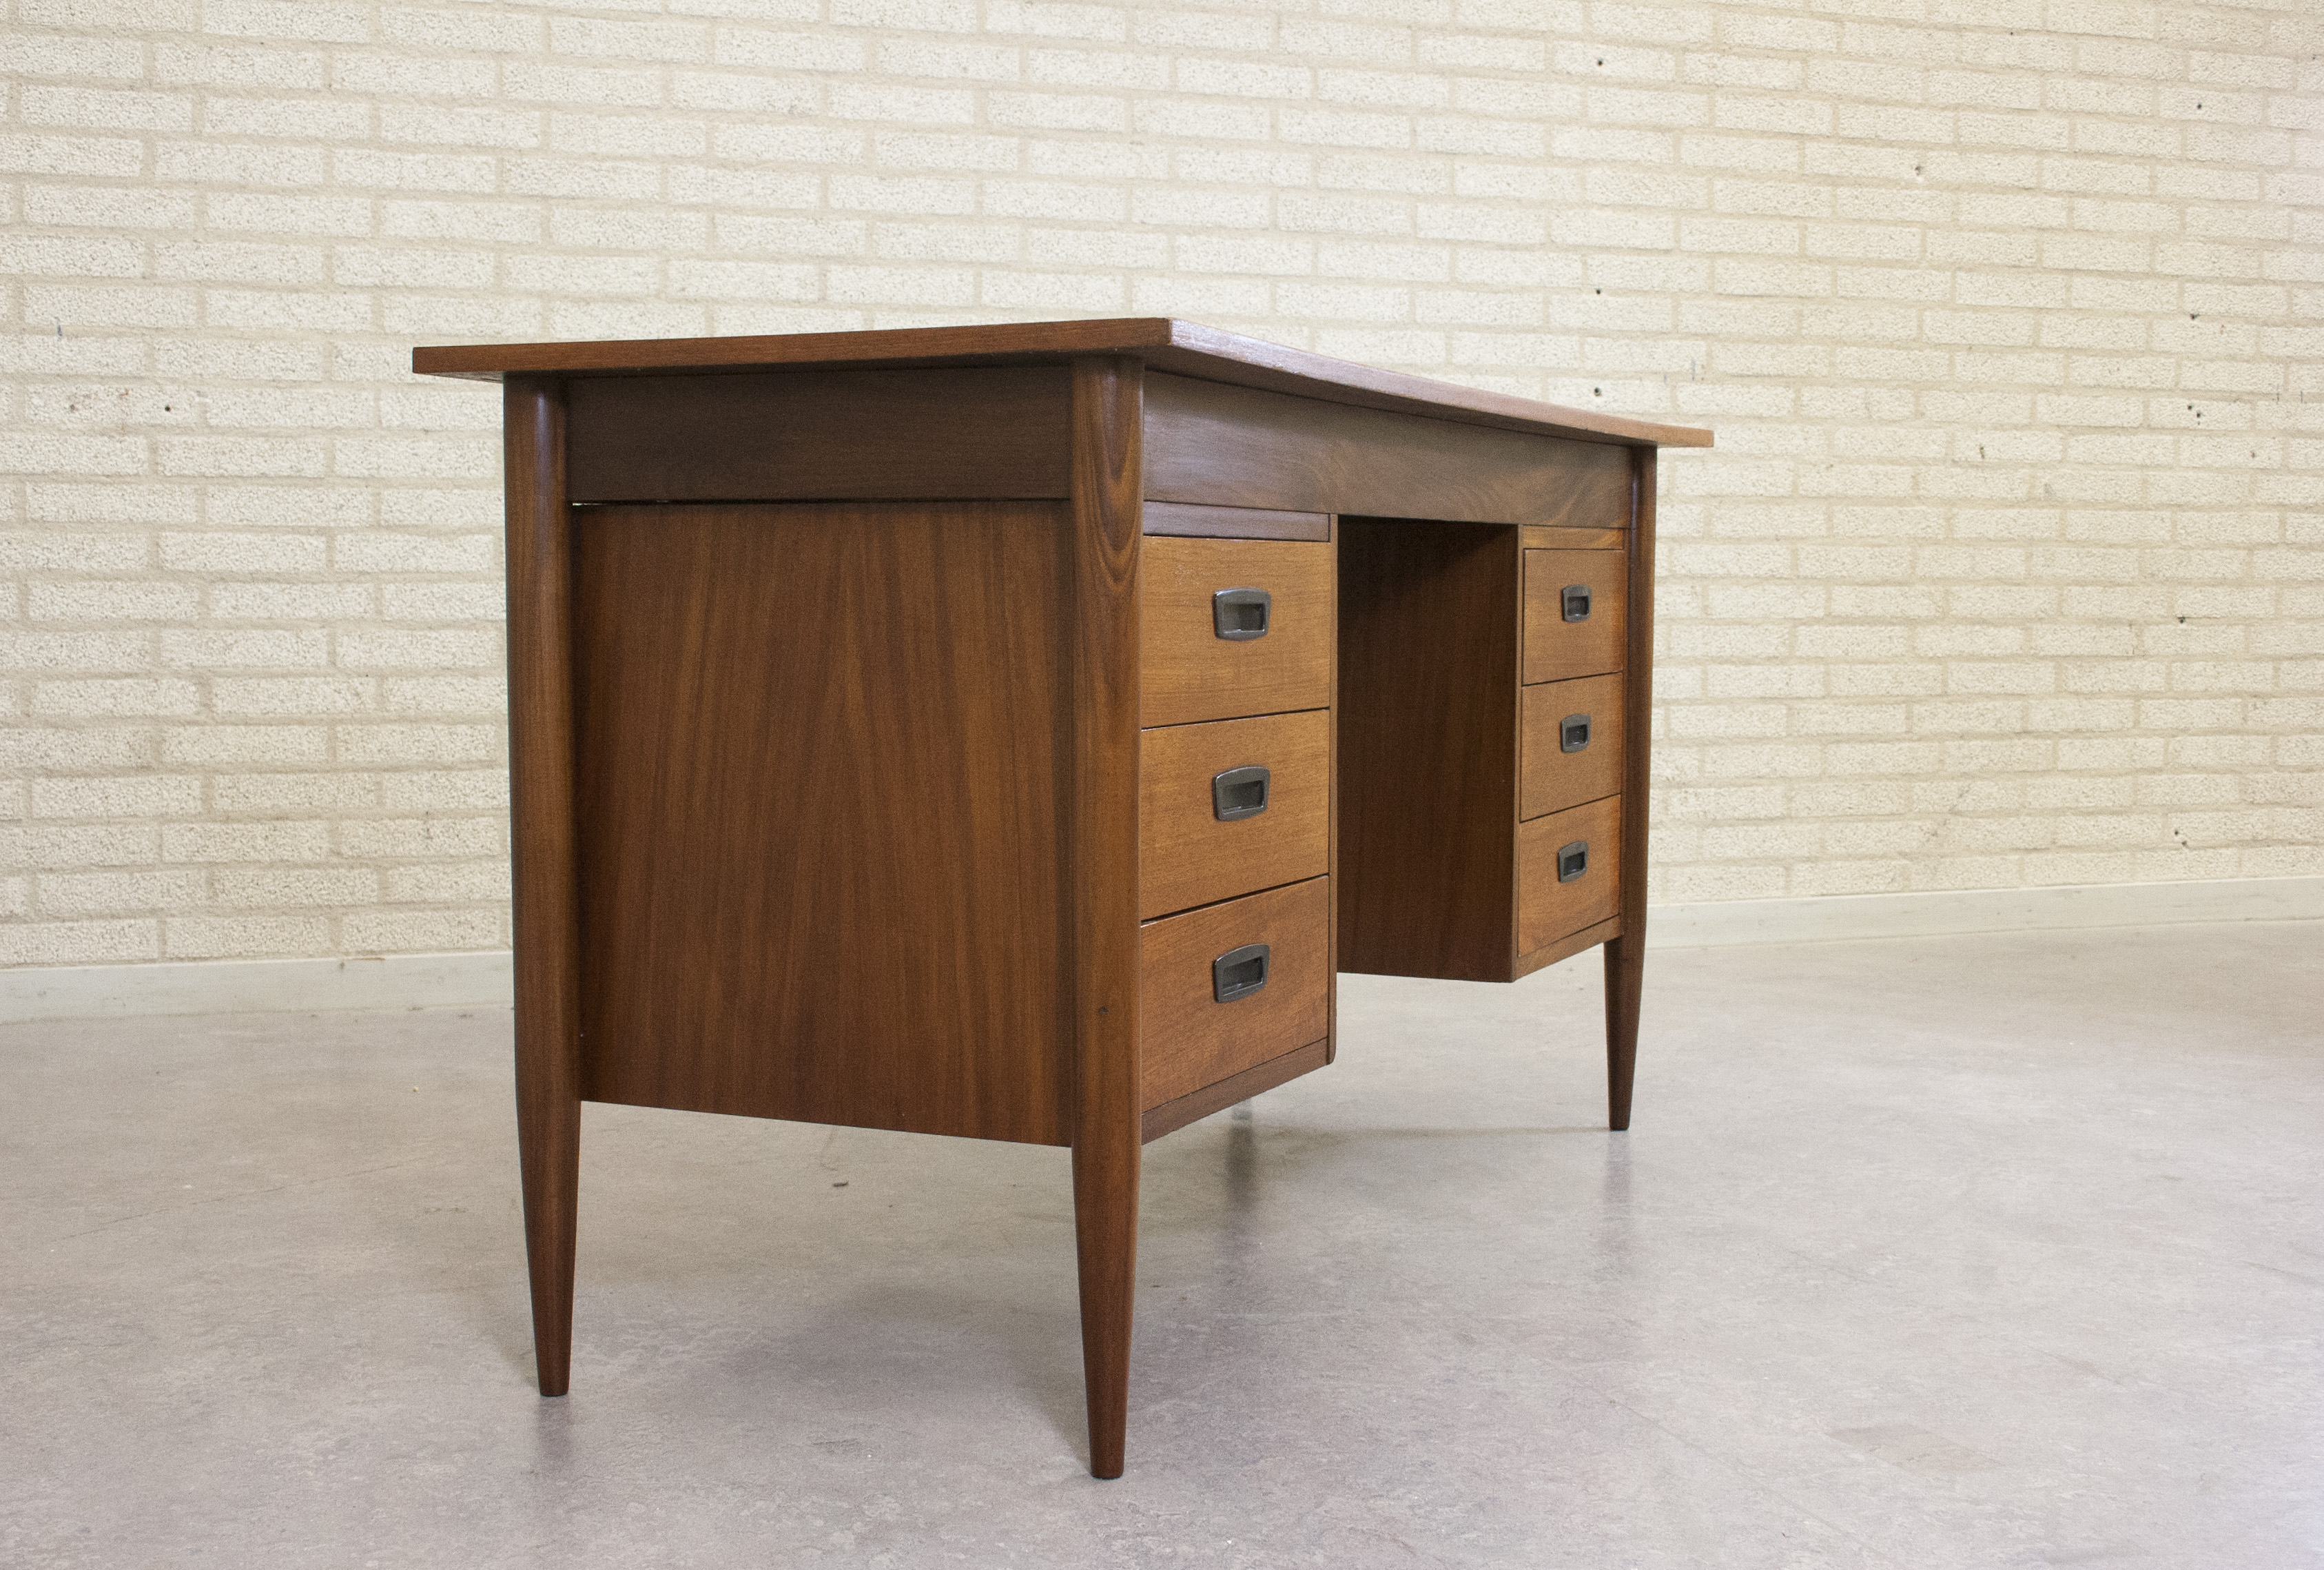 VINTAGE BUREAU Shapes and Sizes